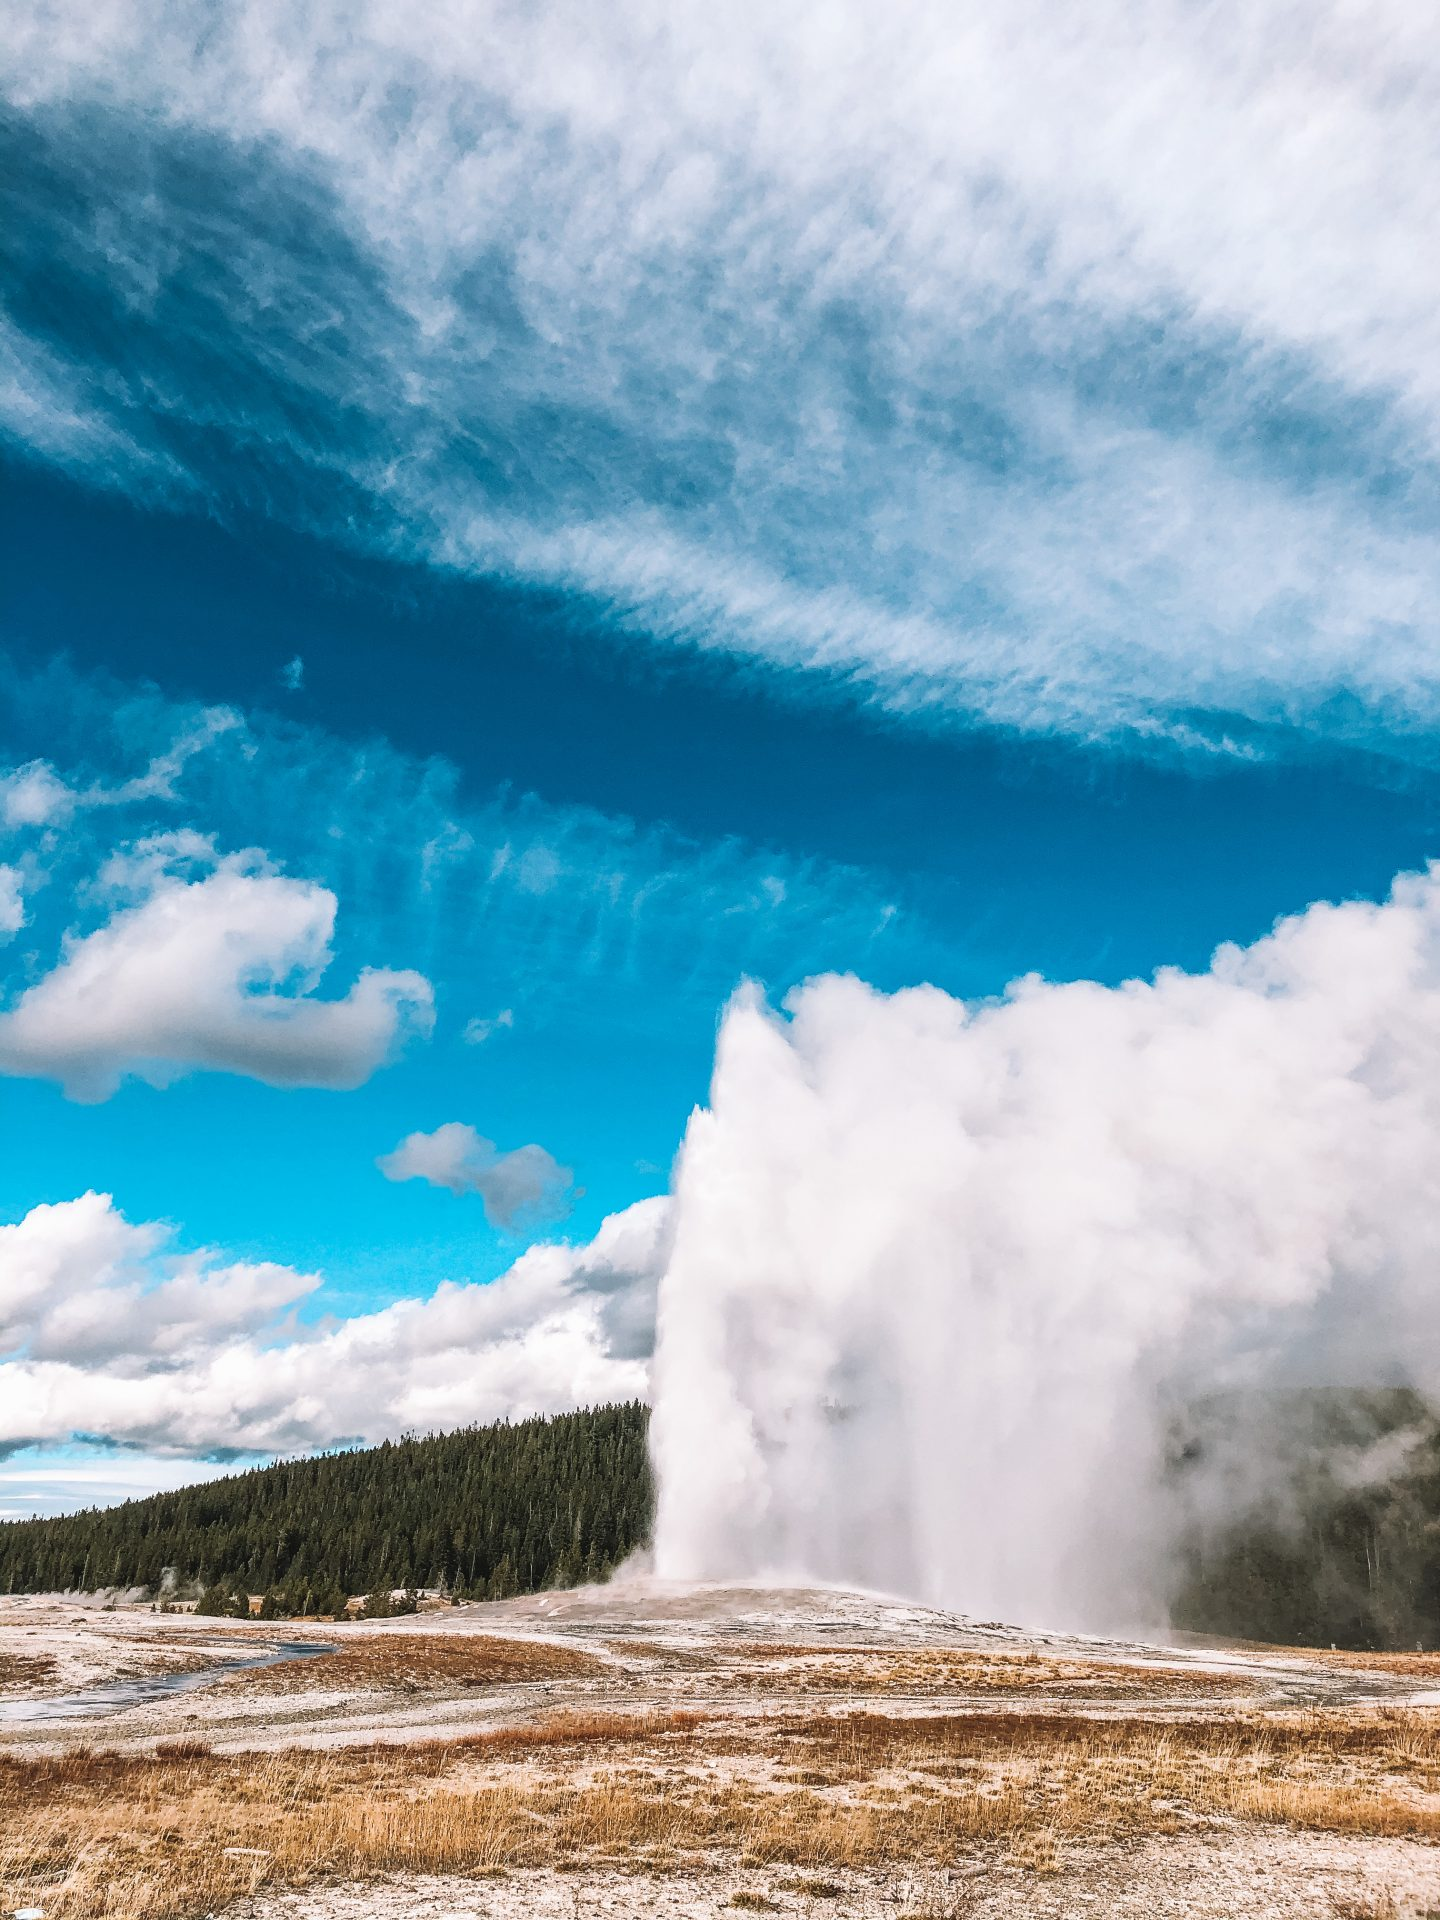 Yellowstone National Park in Wyoming is in my top 10 favorite beautiful places in the US to visit.